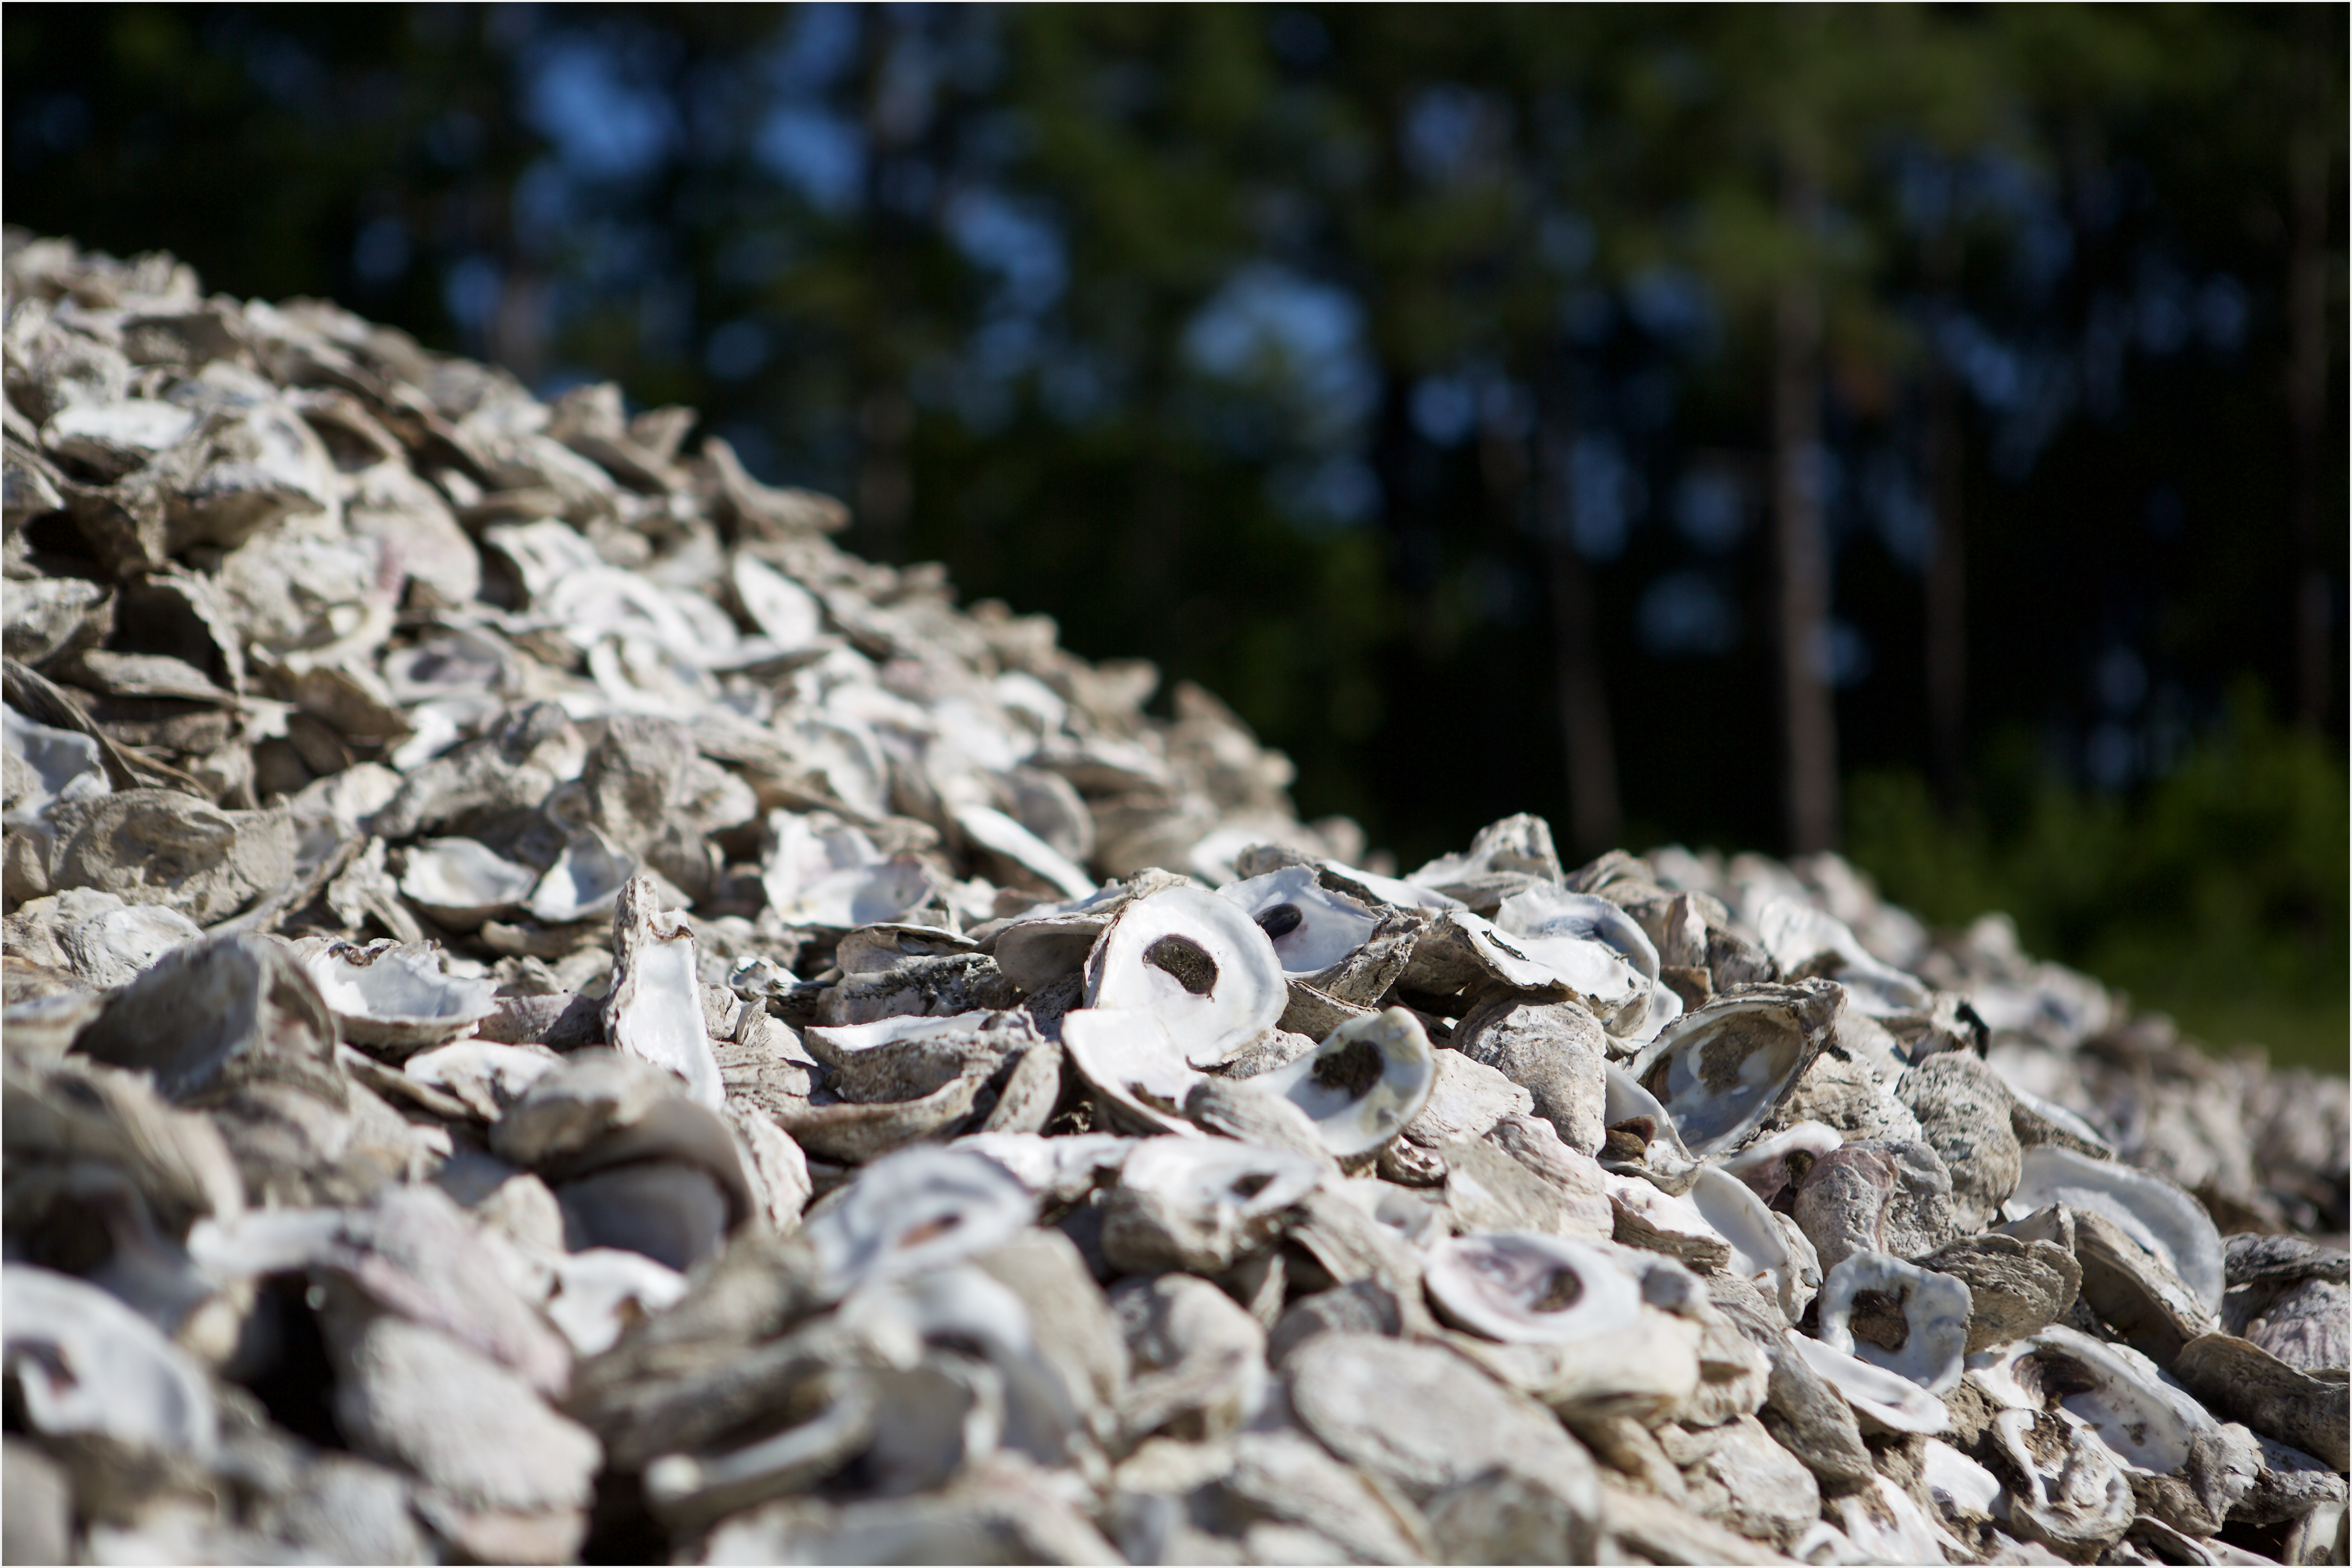 First Of Its Kind Oyster Shell Recycling Program